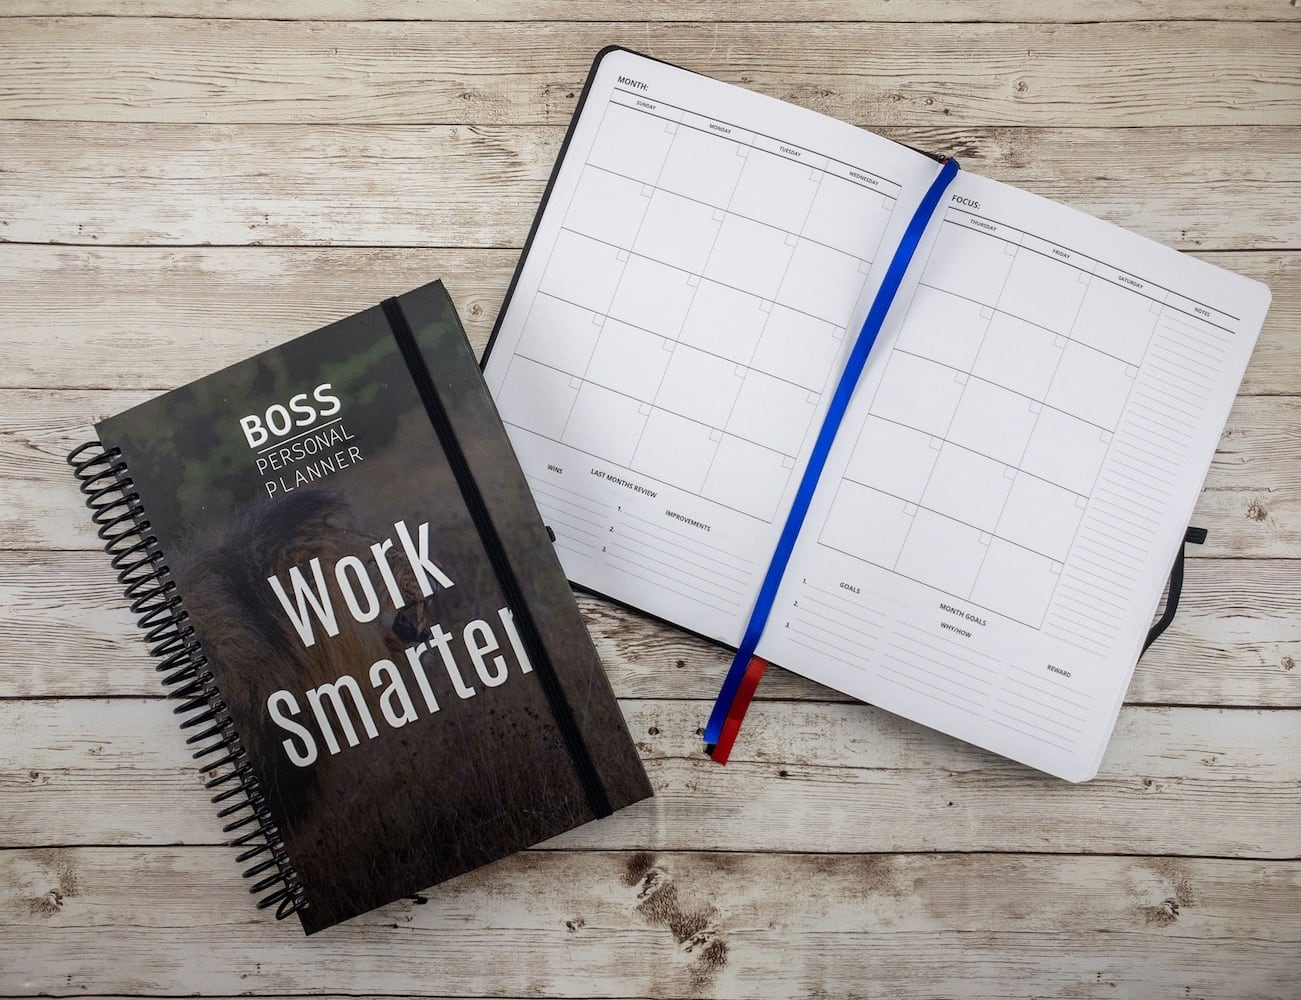 BOSS Personal Planner Personal Productivity Notebook keeps your goals in focus